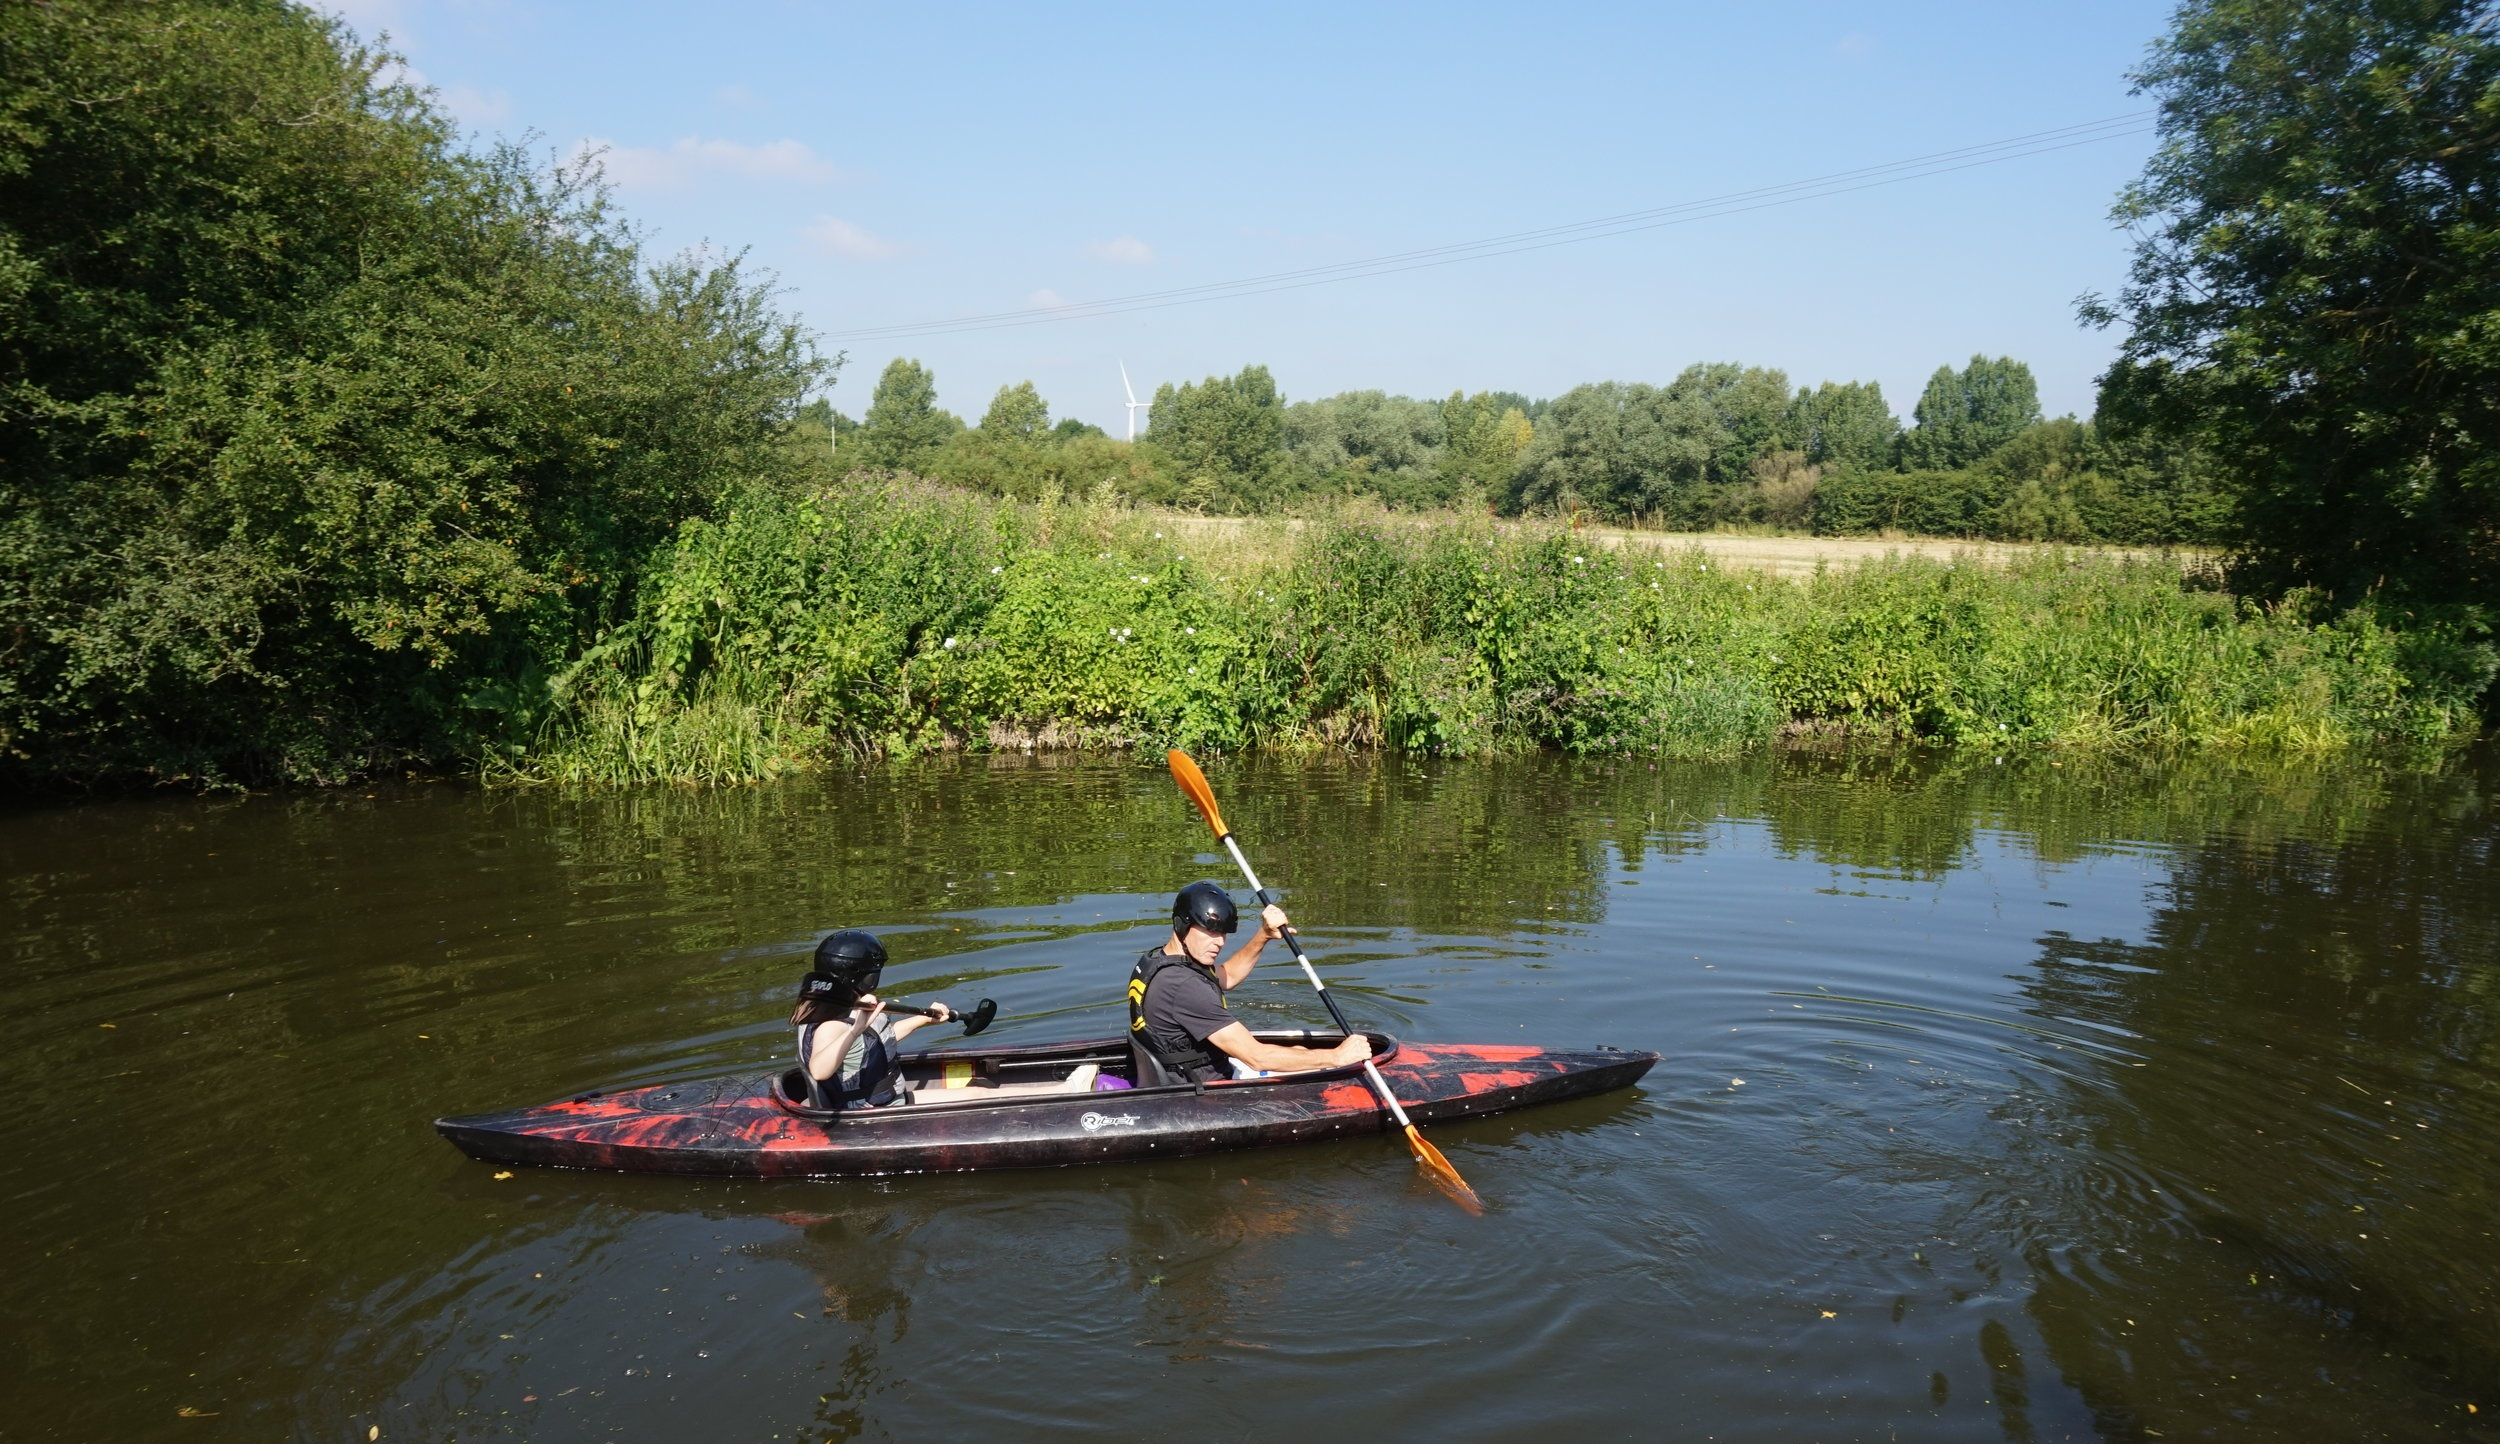 """If you like the outdoors, wildlife, kayaking and camping you'll love this."" - - Martin Cooke, Leicester"